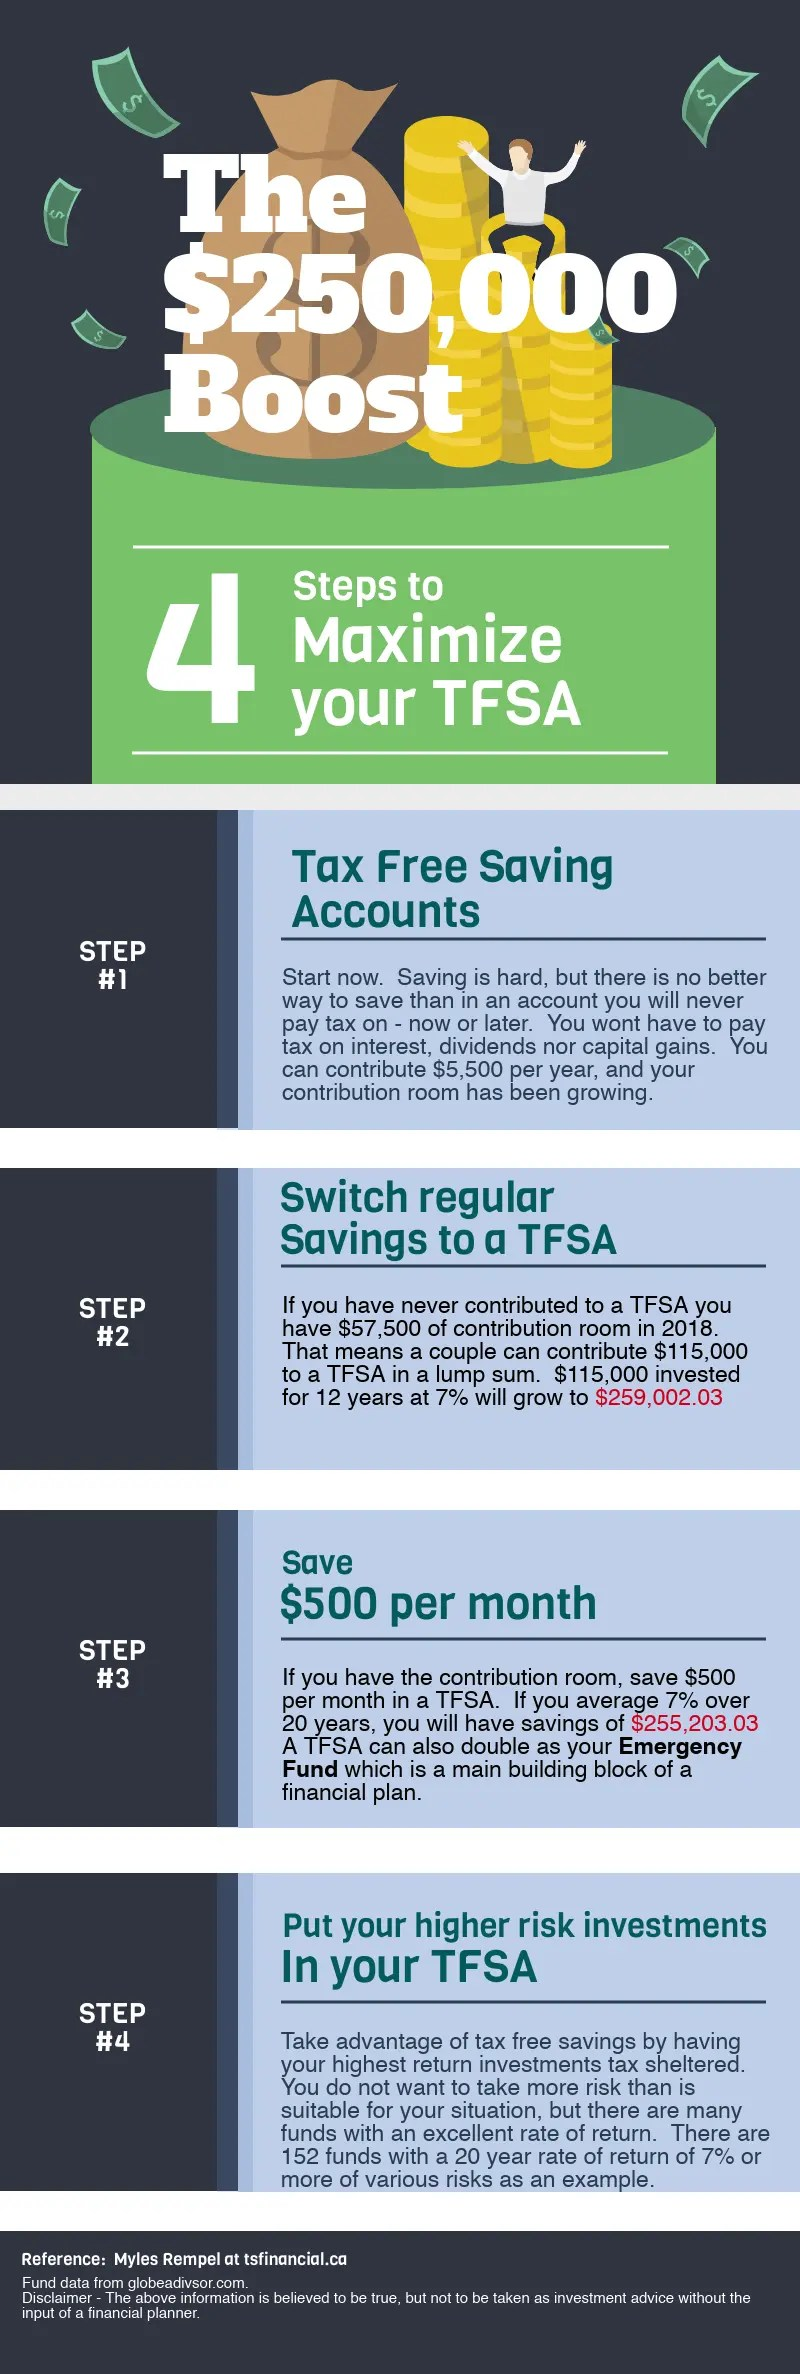 Maximize your TFSA